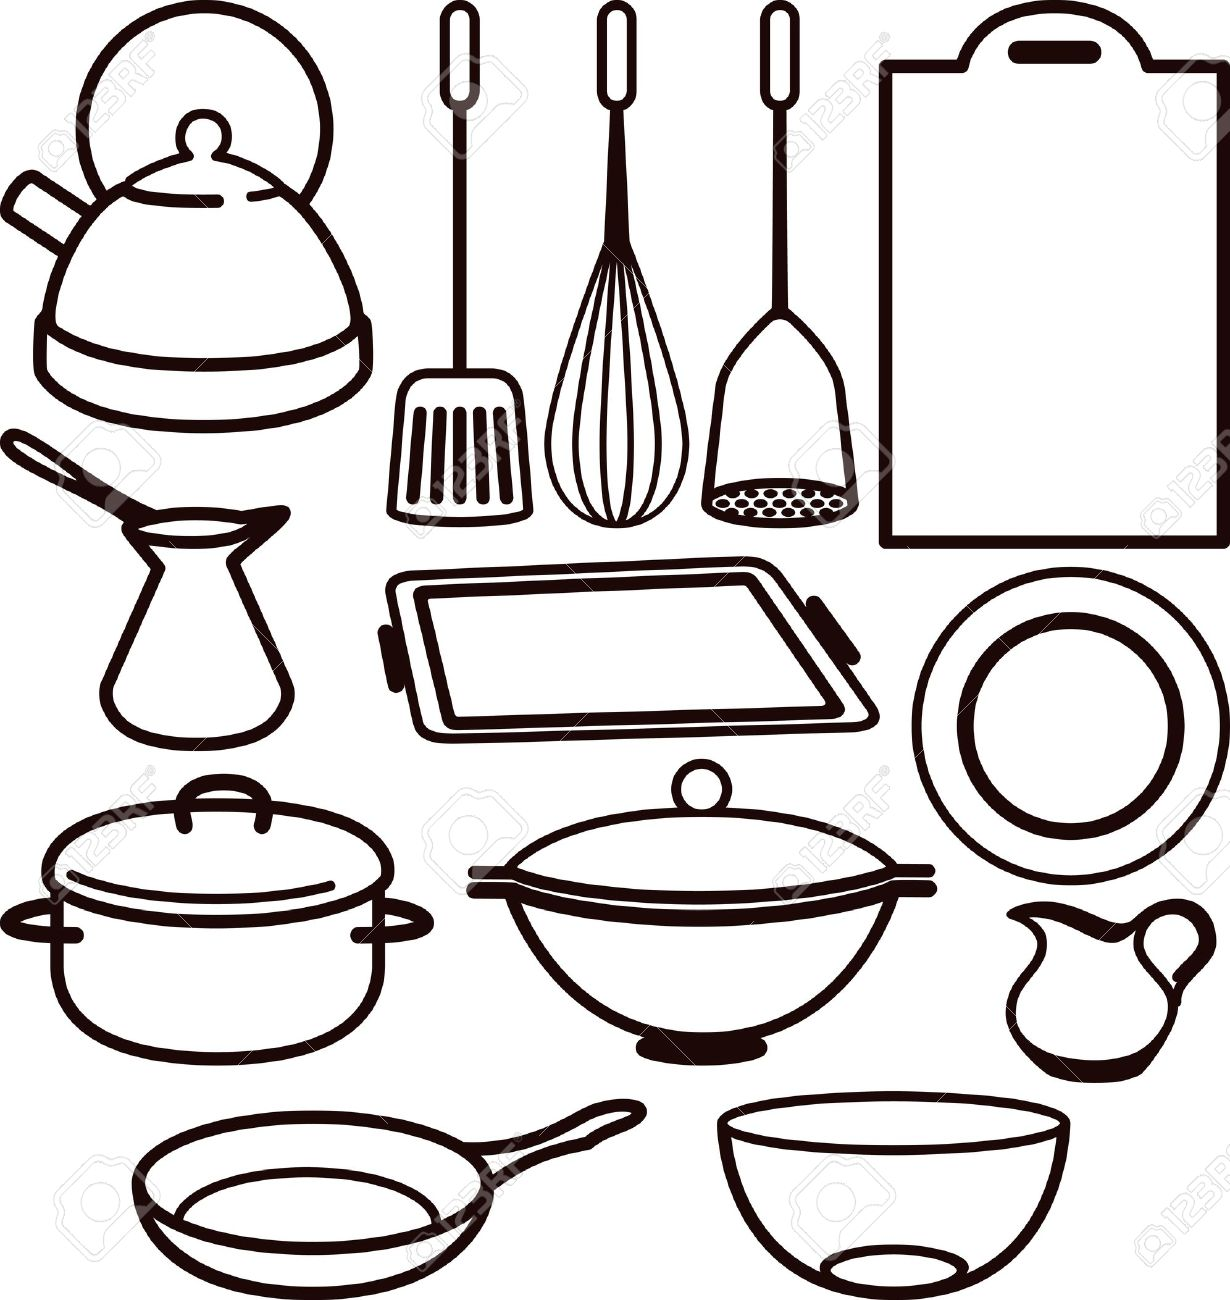 1230x1300 Cooking Utensils Drawing